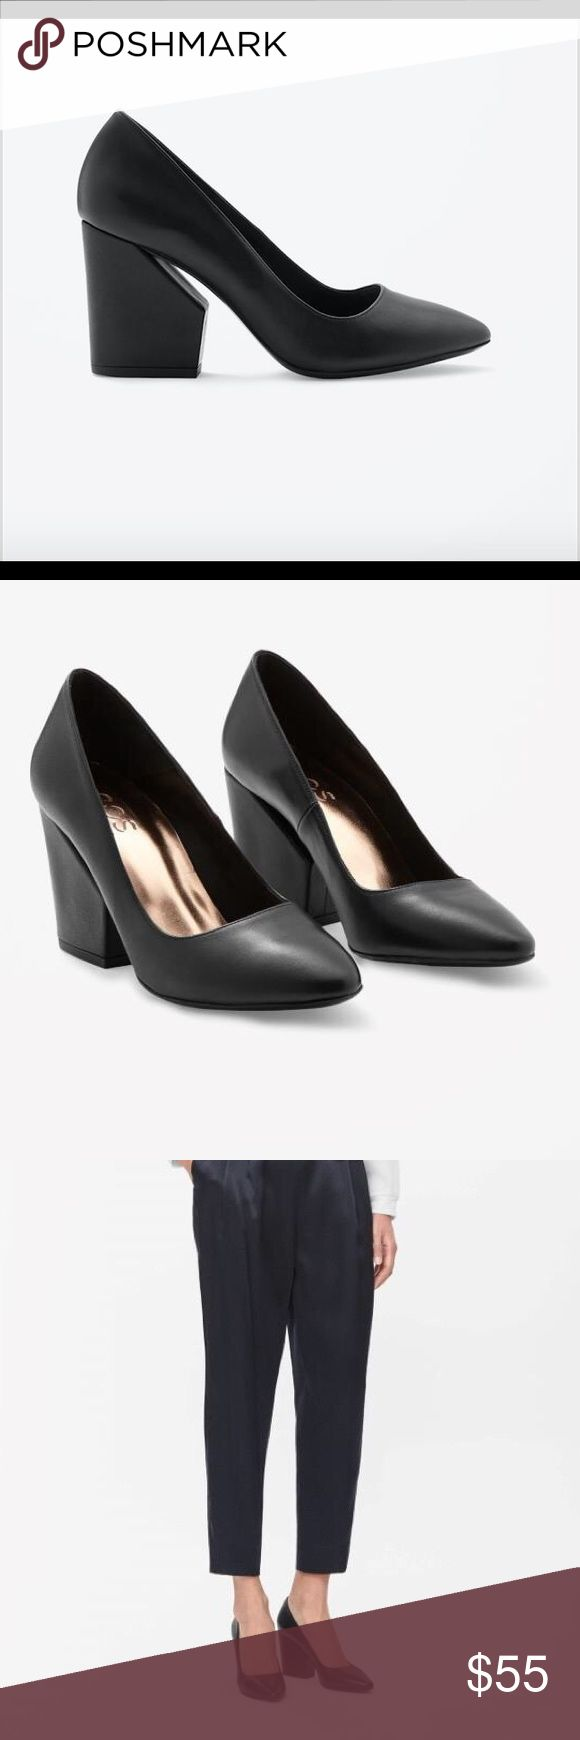 COS black leather heels shoes 36 EUR, 6 US Minimalist elegant shoes of Scandinavia brand COS, cozy and simple. Worn once. COS Shoes Heels